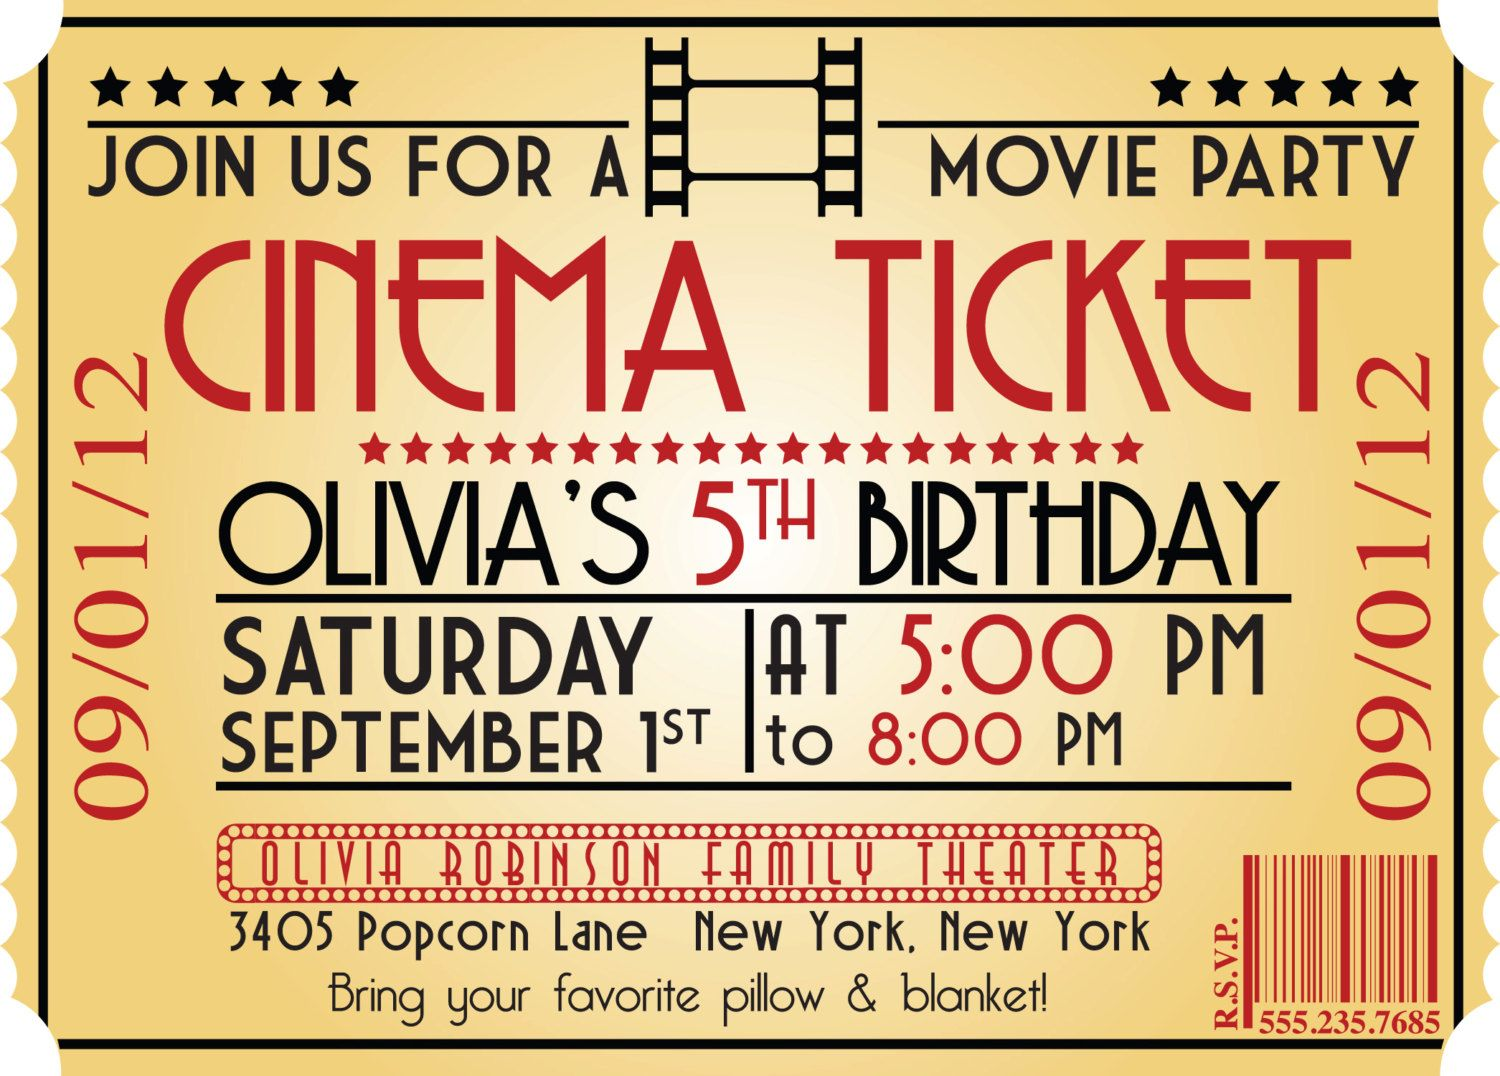 free movie party invitation template - Daway.dabrowa.co